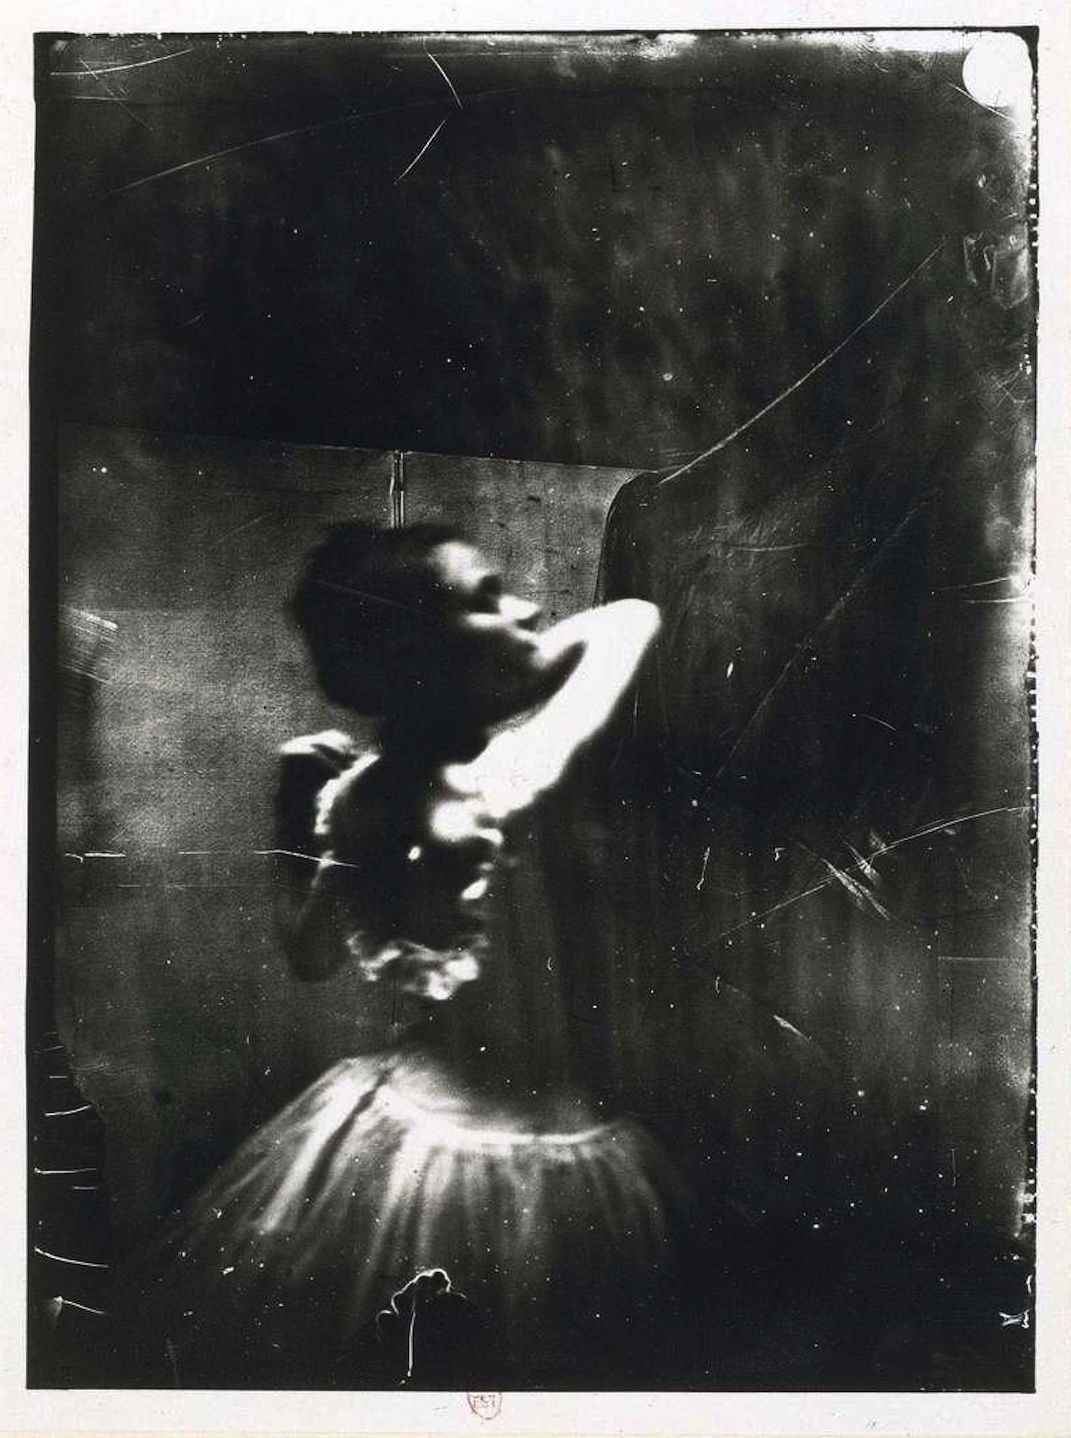 Dancer adjusting her shoulder strap, ca. 1900 (Edgar Degas) - via musicbabes